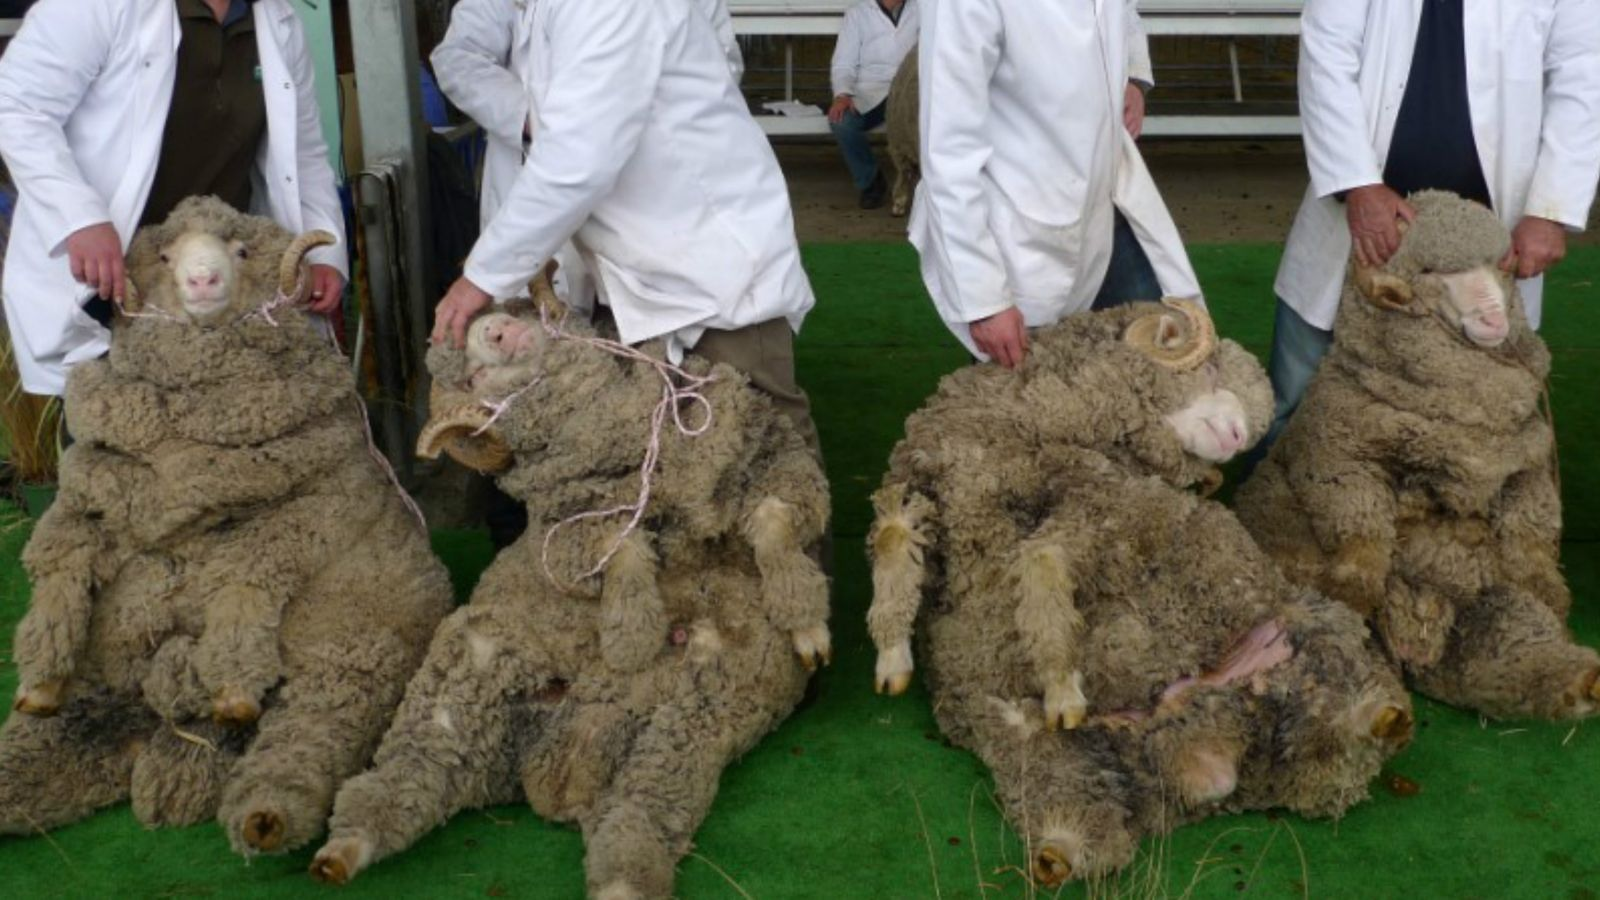 Four very woolly sheep held on their haunches by four unseen people in white lab coats